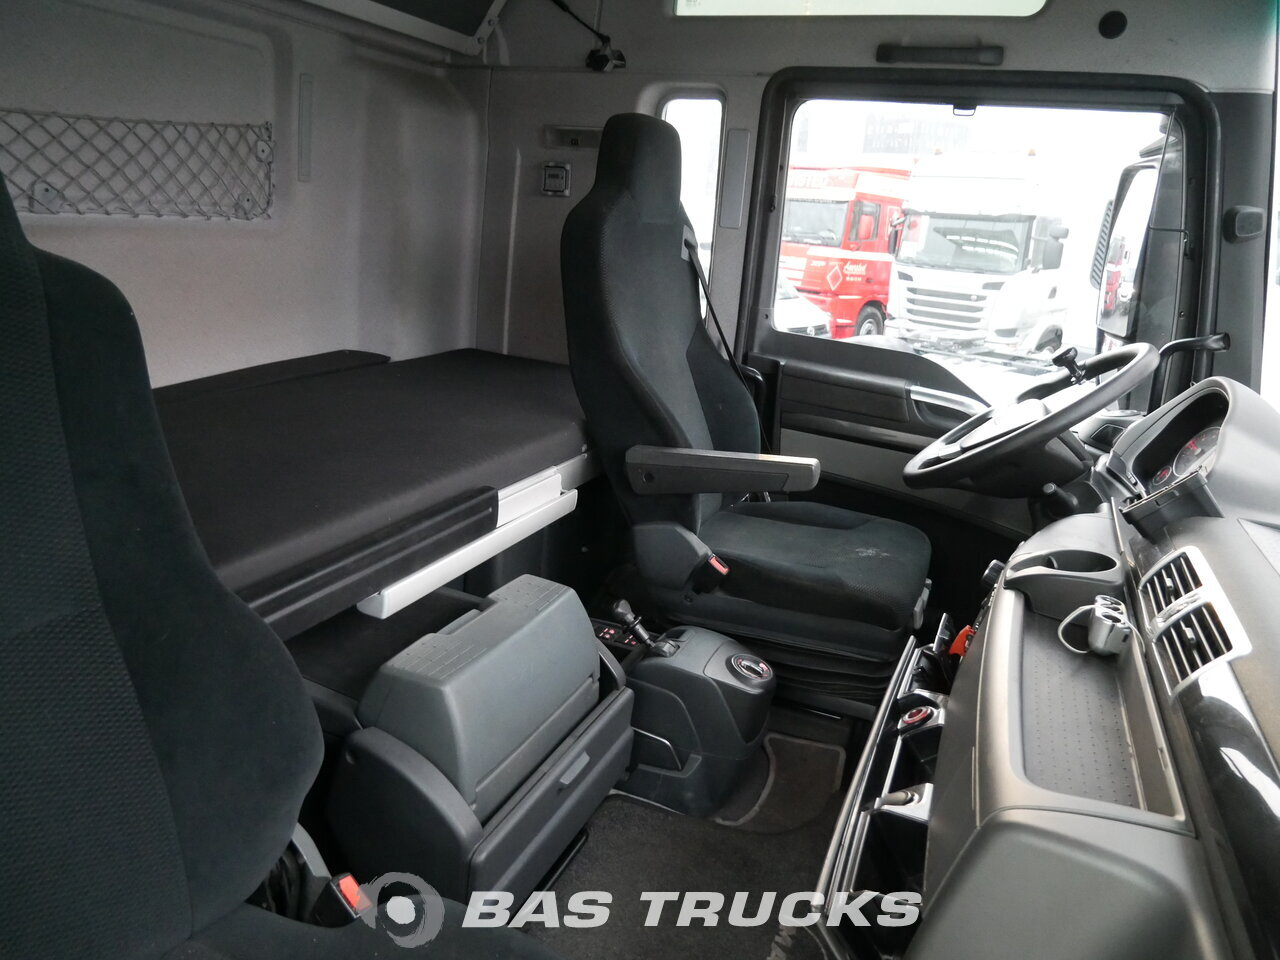 man tgx xxl truck euro norm 5 39400 bas trucks. Black Bedroom Furniture Sets. Home Design Ideas